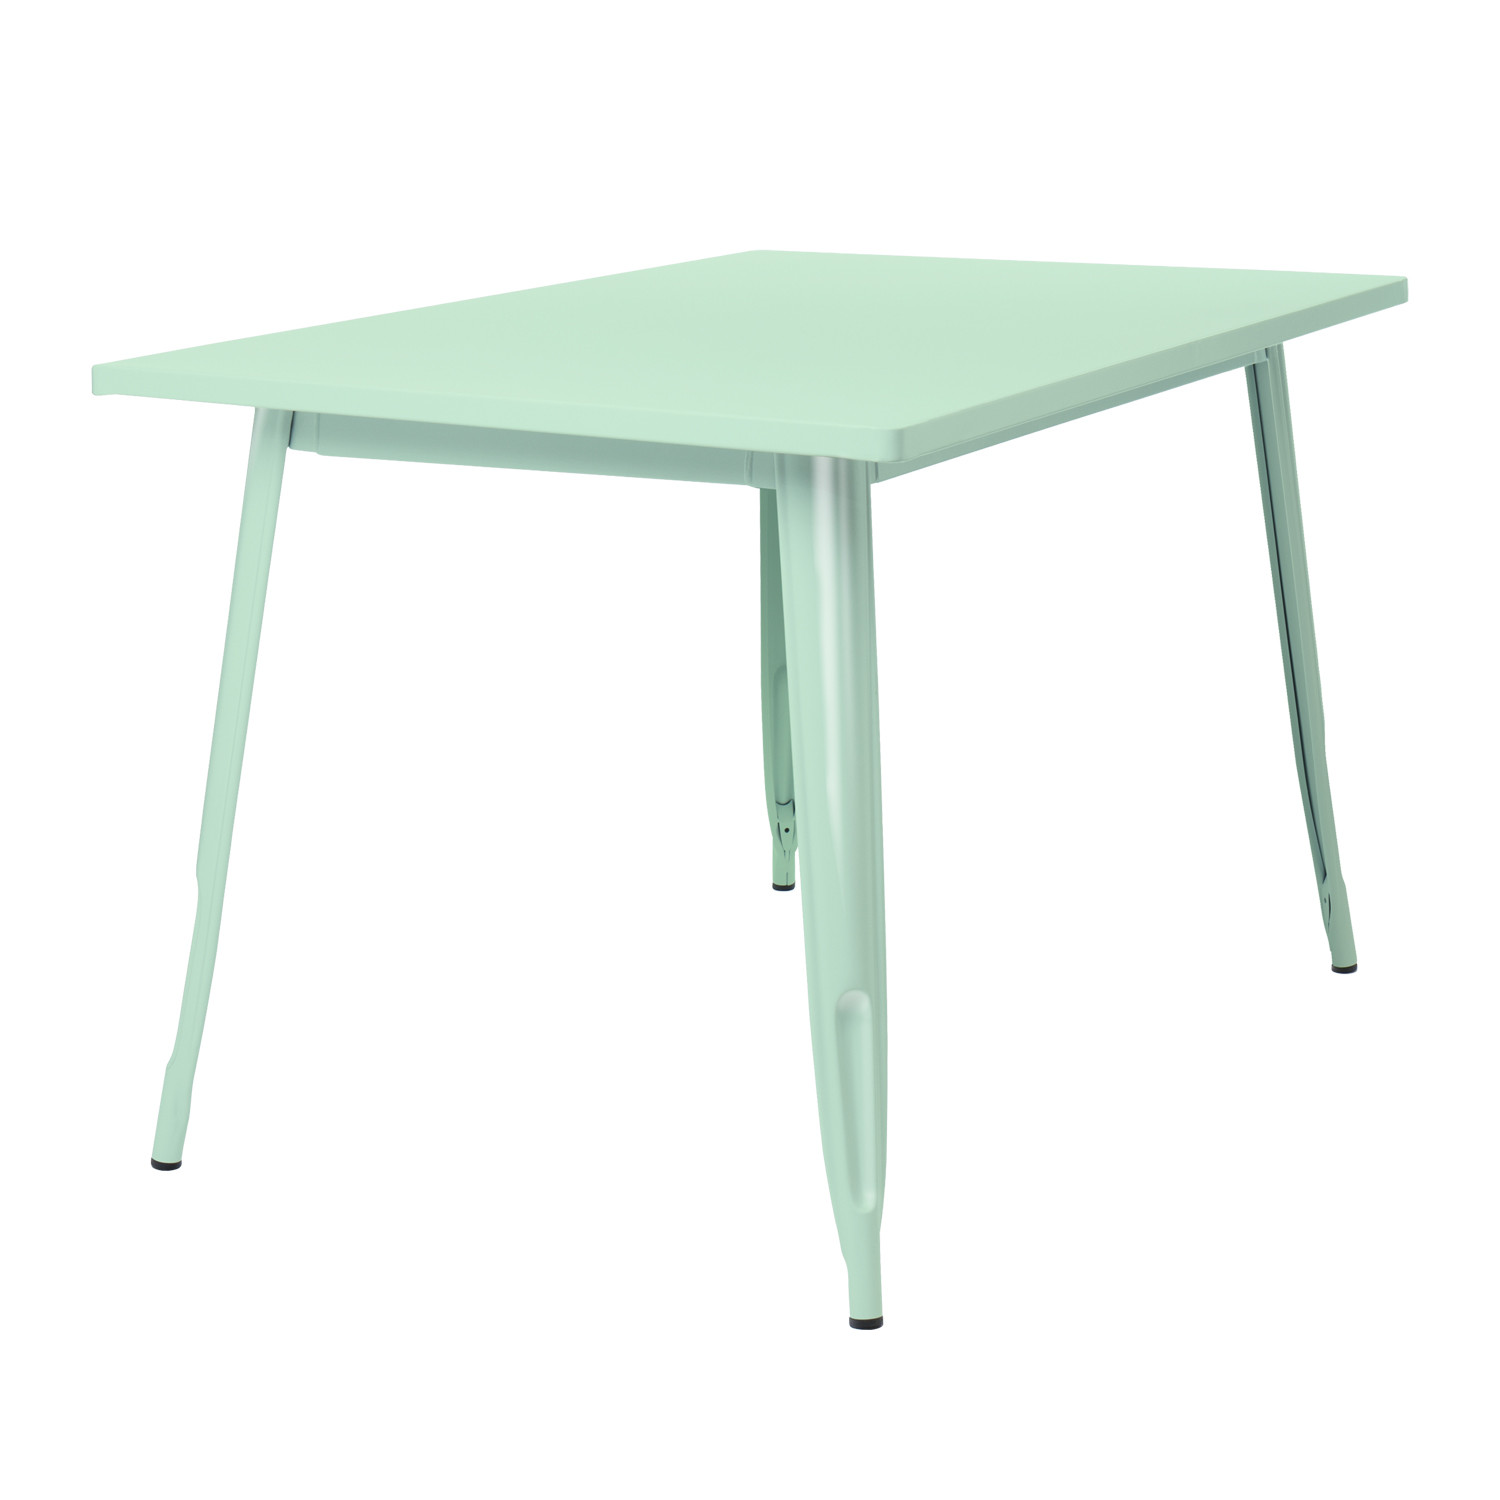 LIX Table (120x80), gallery image 1